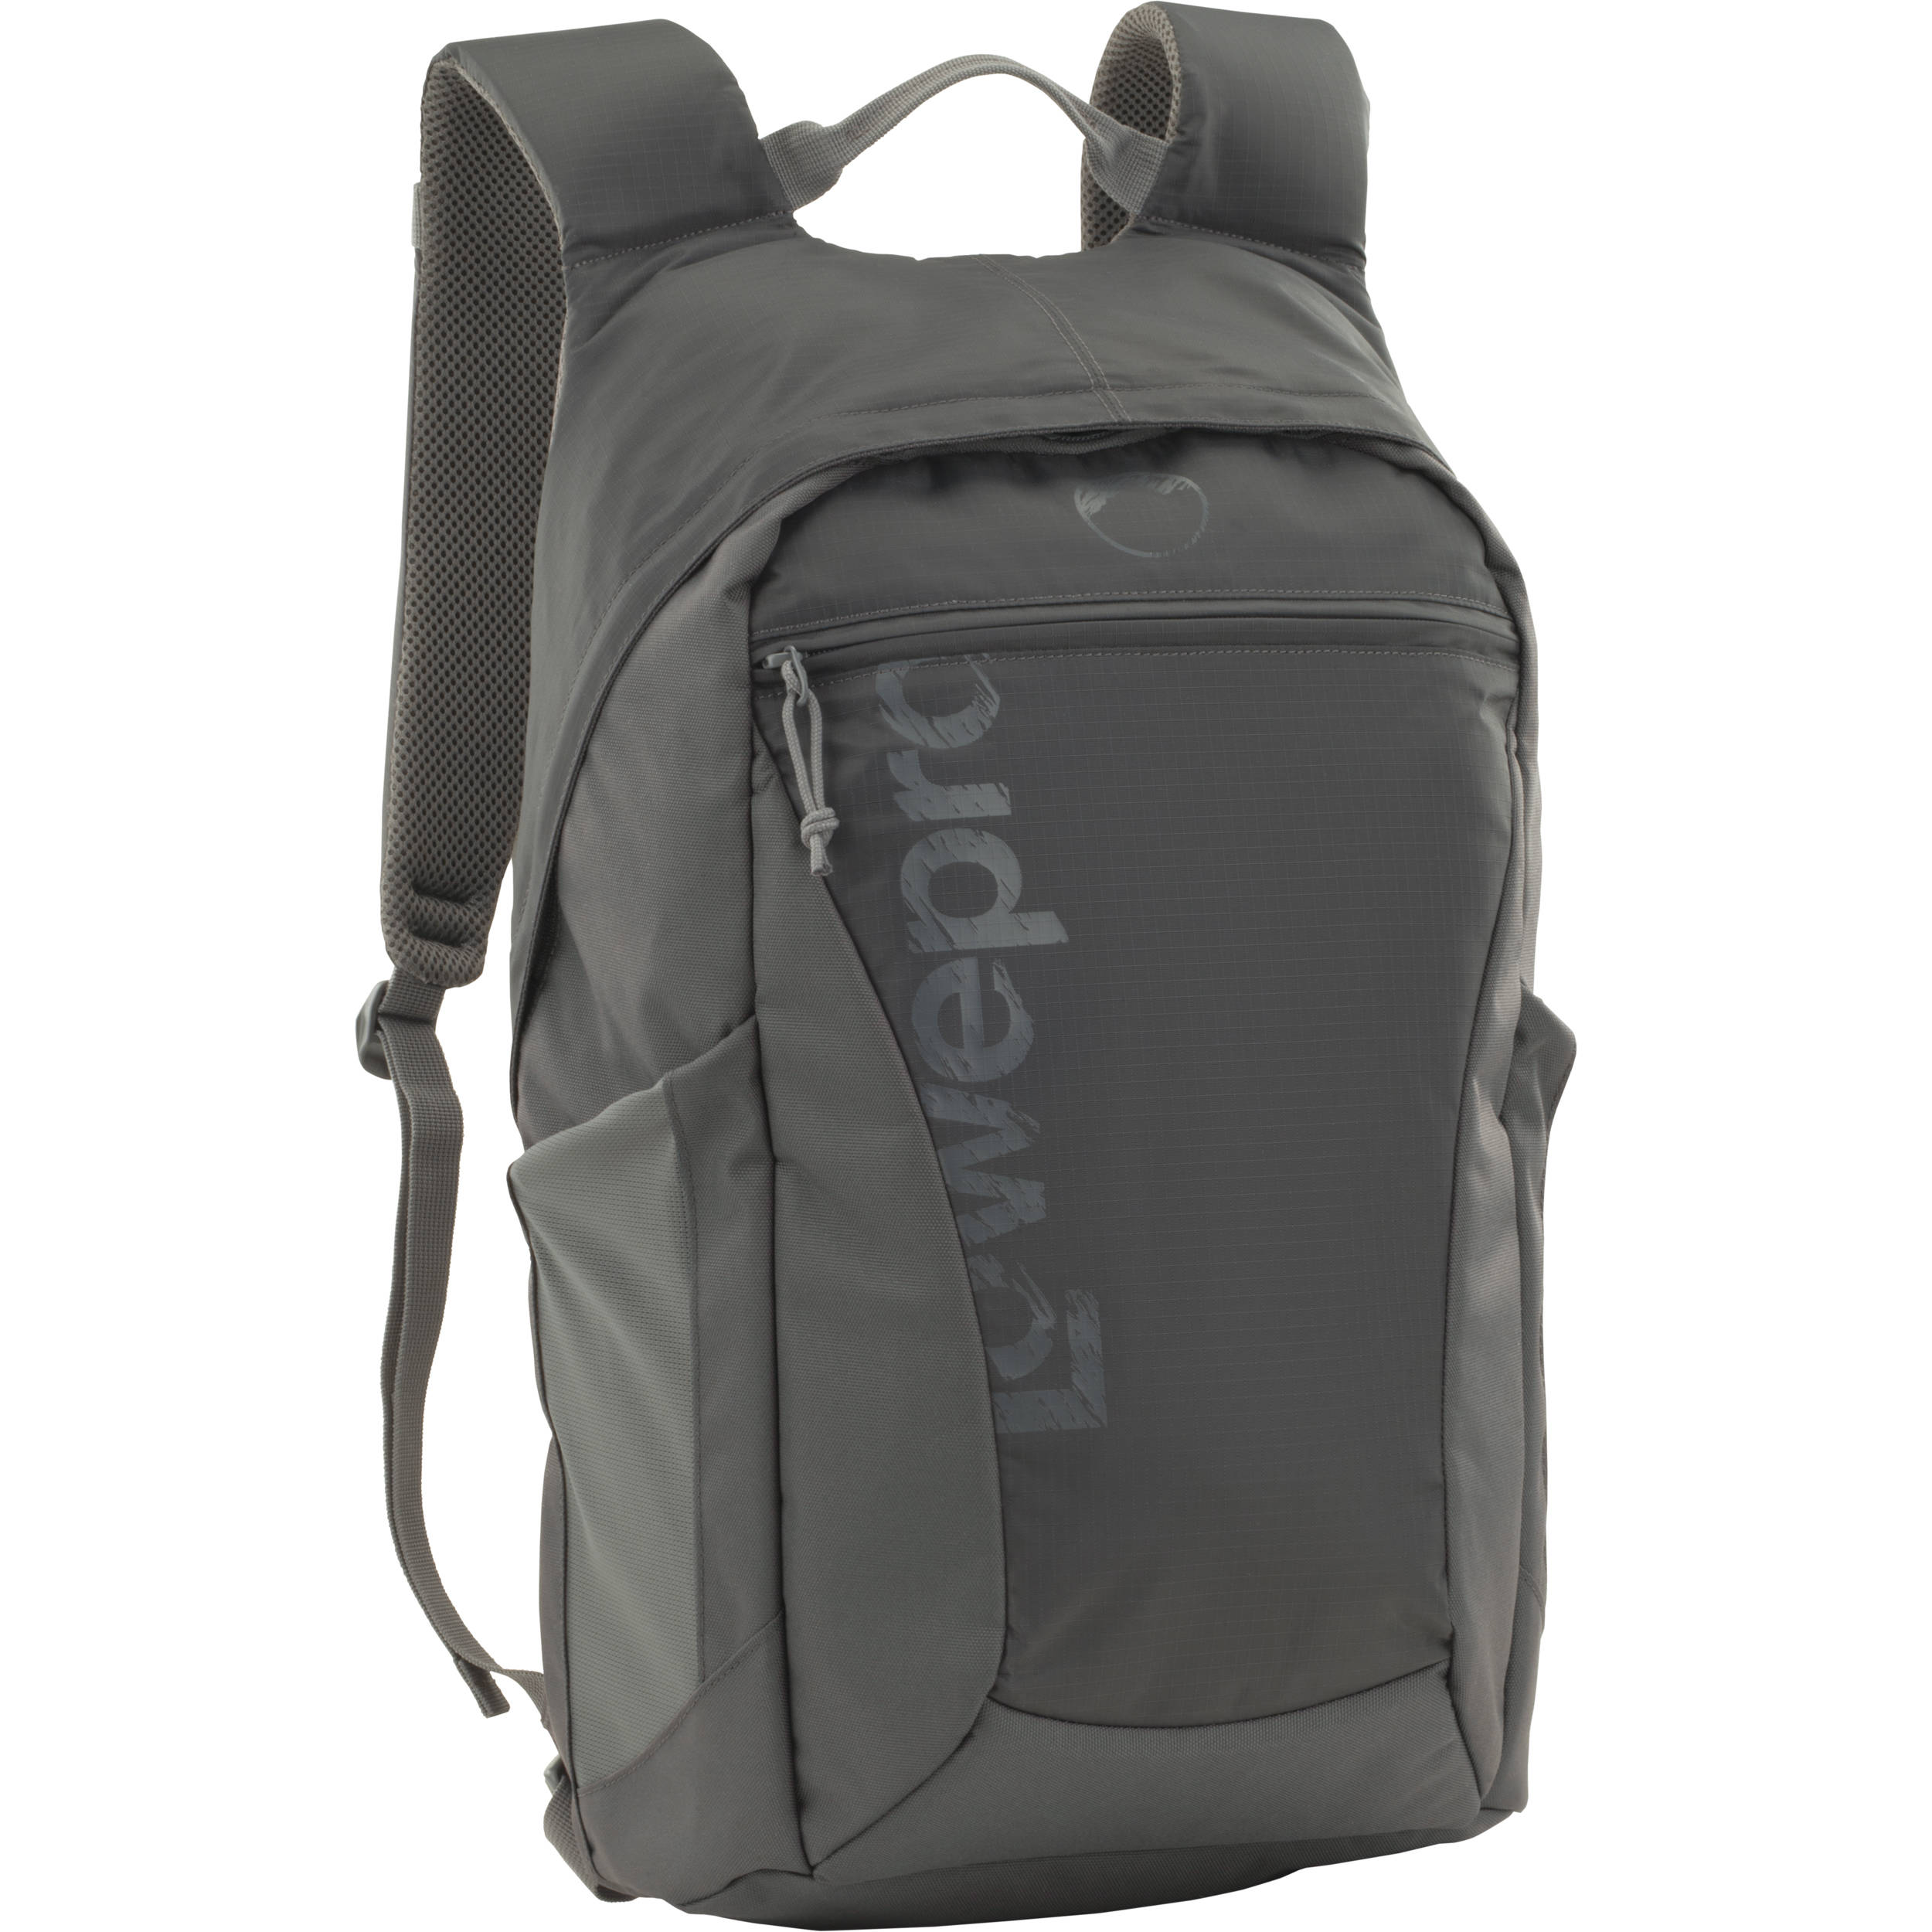 Lowepro Photo Hatchback 22l Aw Backpack Slate Gray Lp36434 Bh American Standard Slim Smart Washer 3 Seat Cover Wt